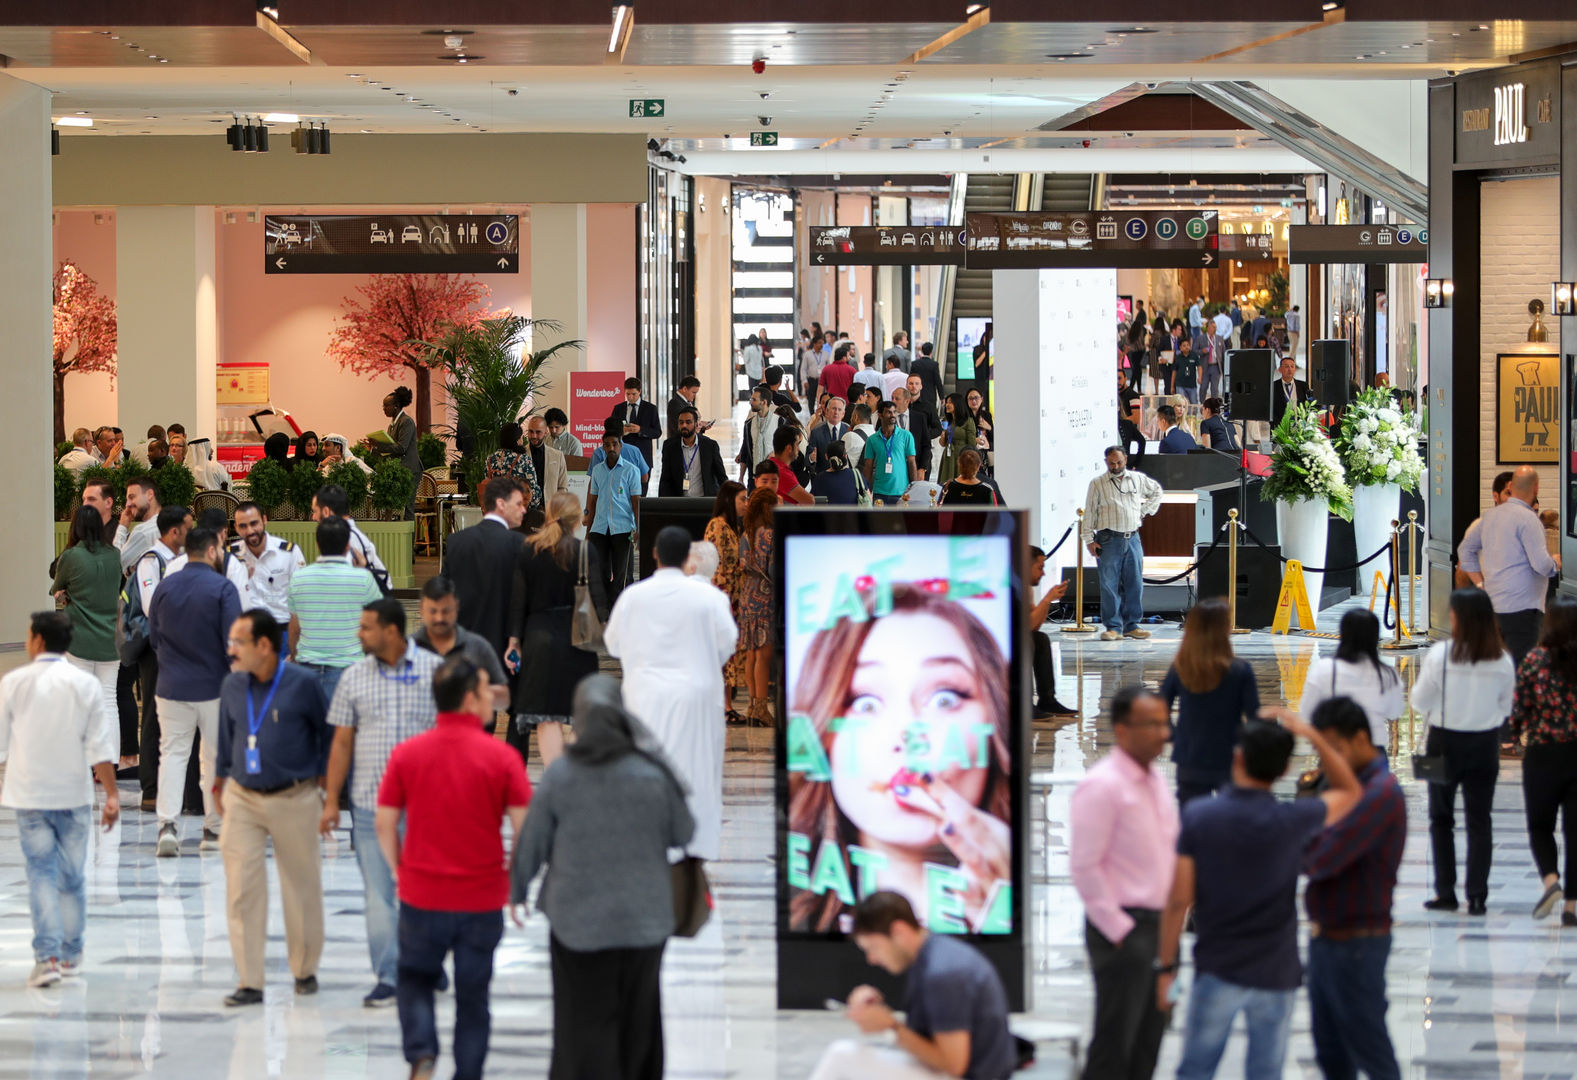 The Galleria Al Maryah Island's Expansion Attracts Over 400,000 People in First 4 Days